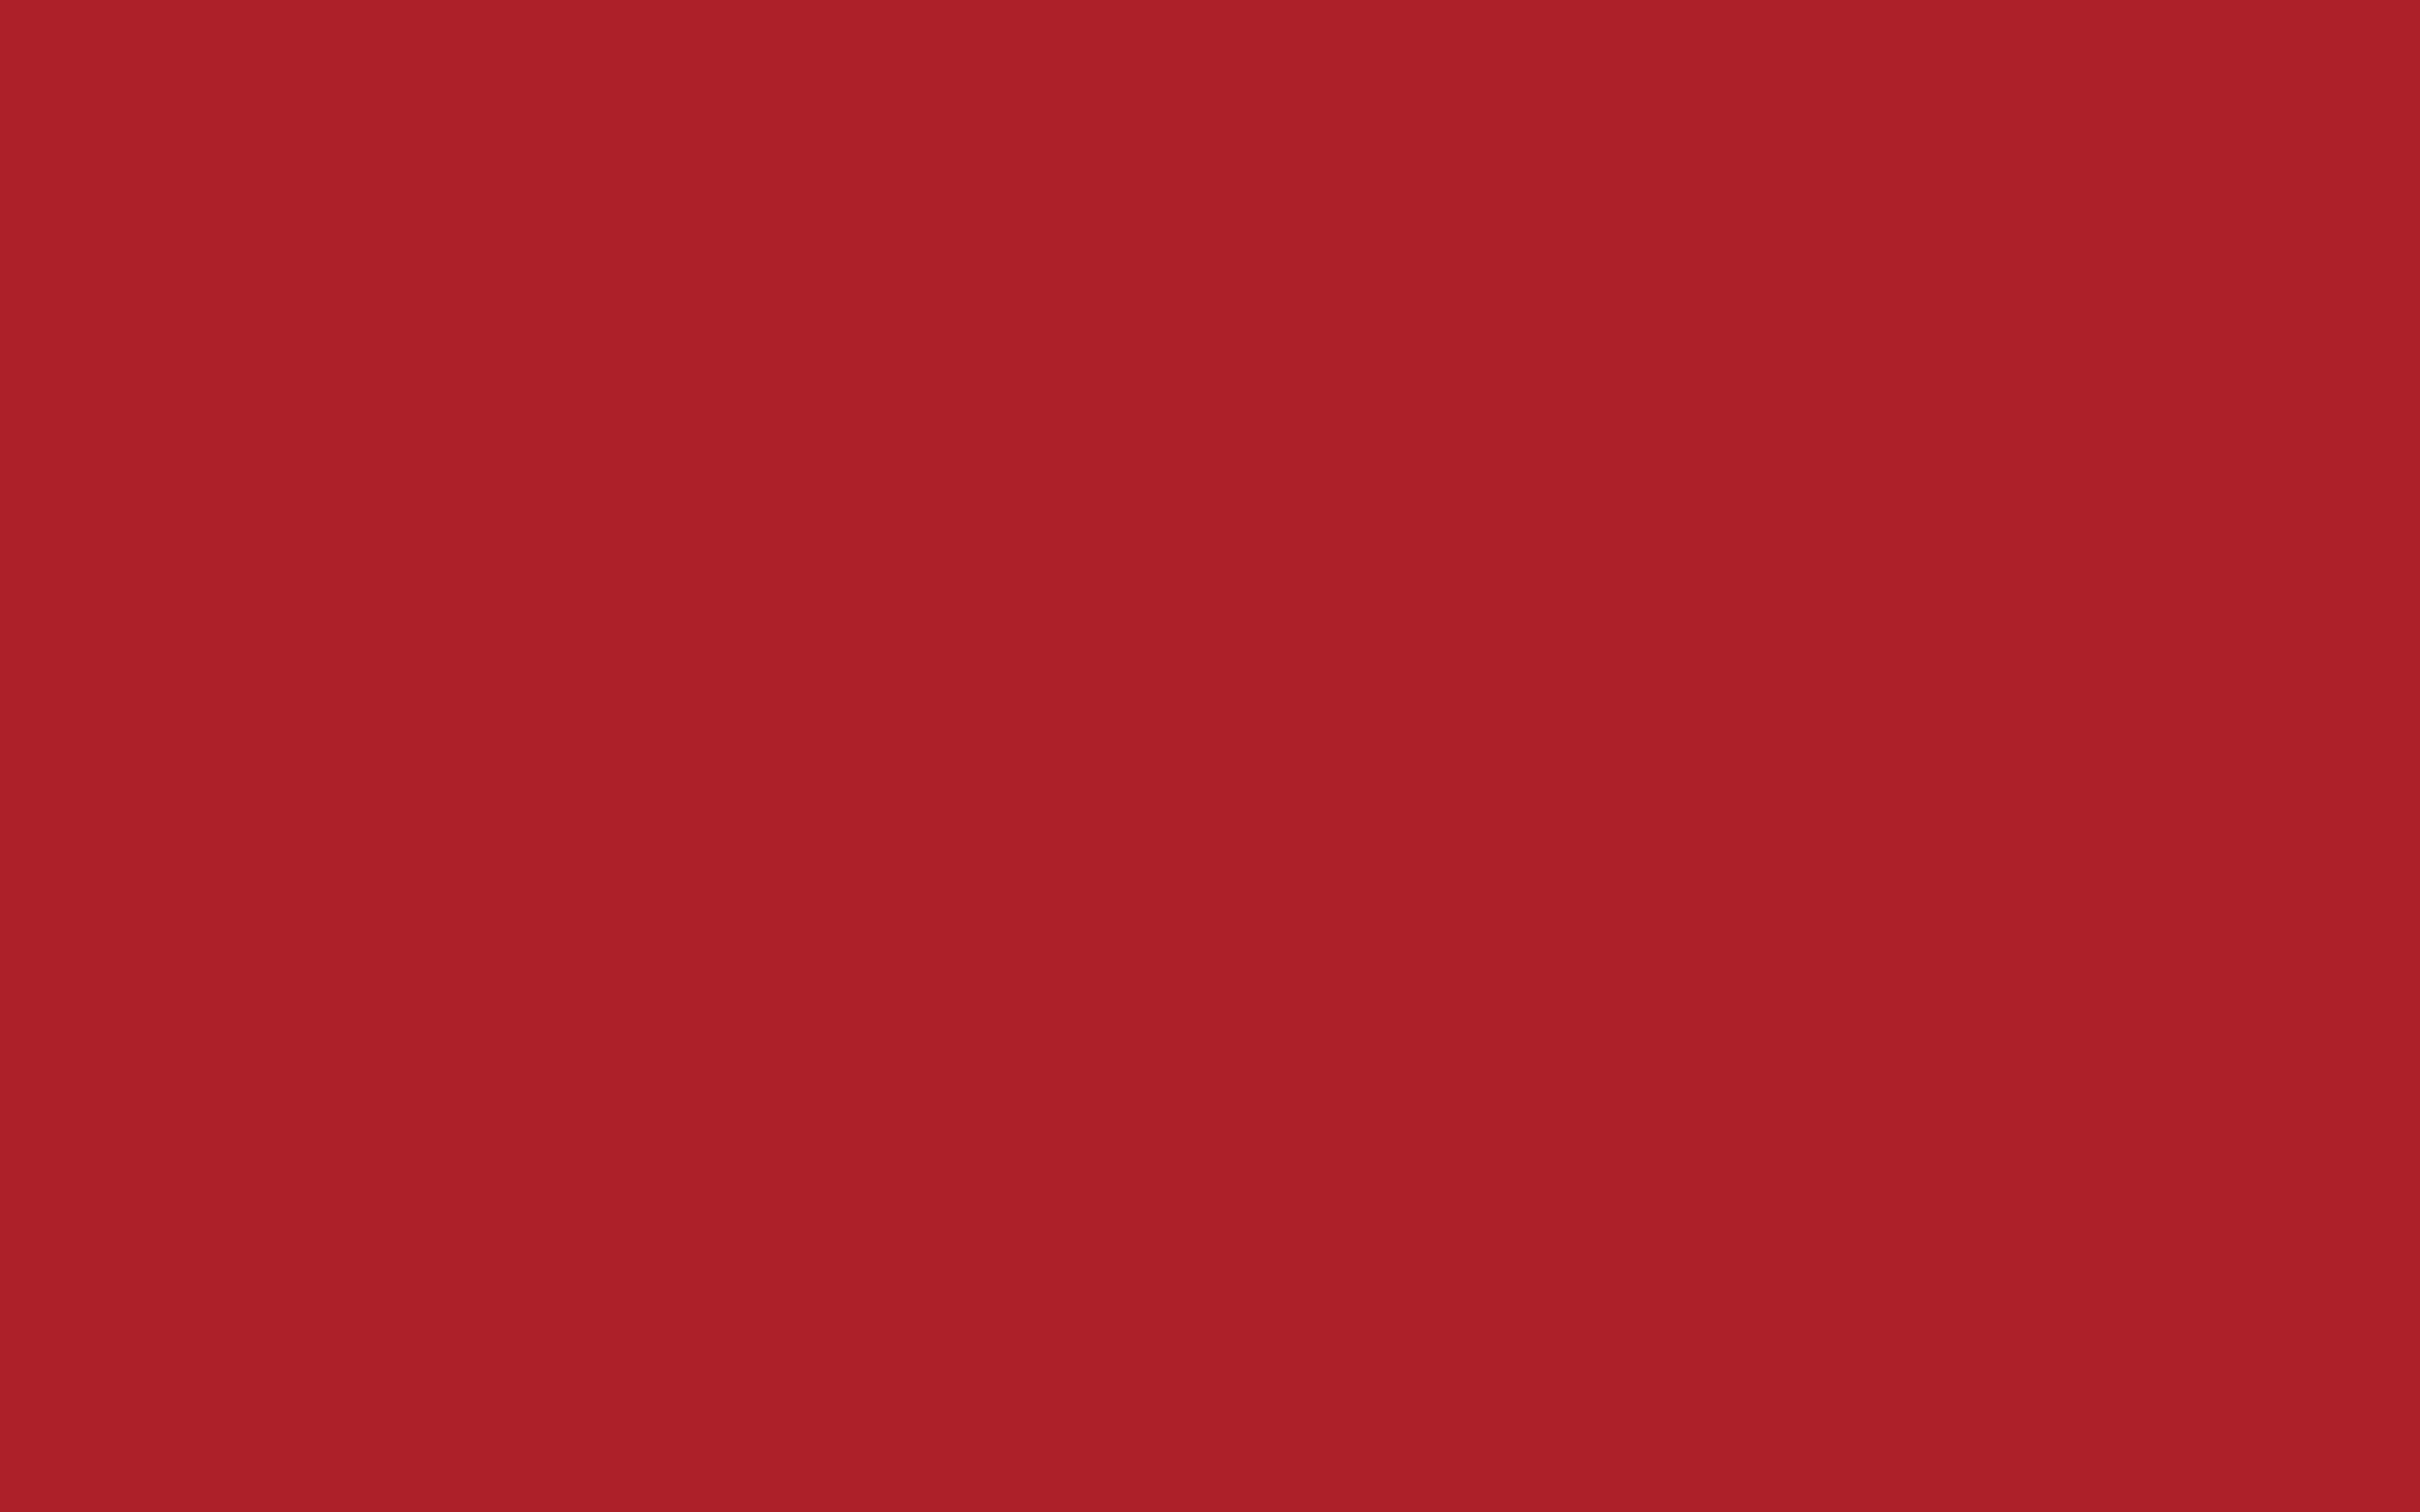 2880x1800 Upsdell Red Solid Color Background